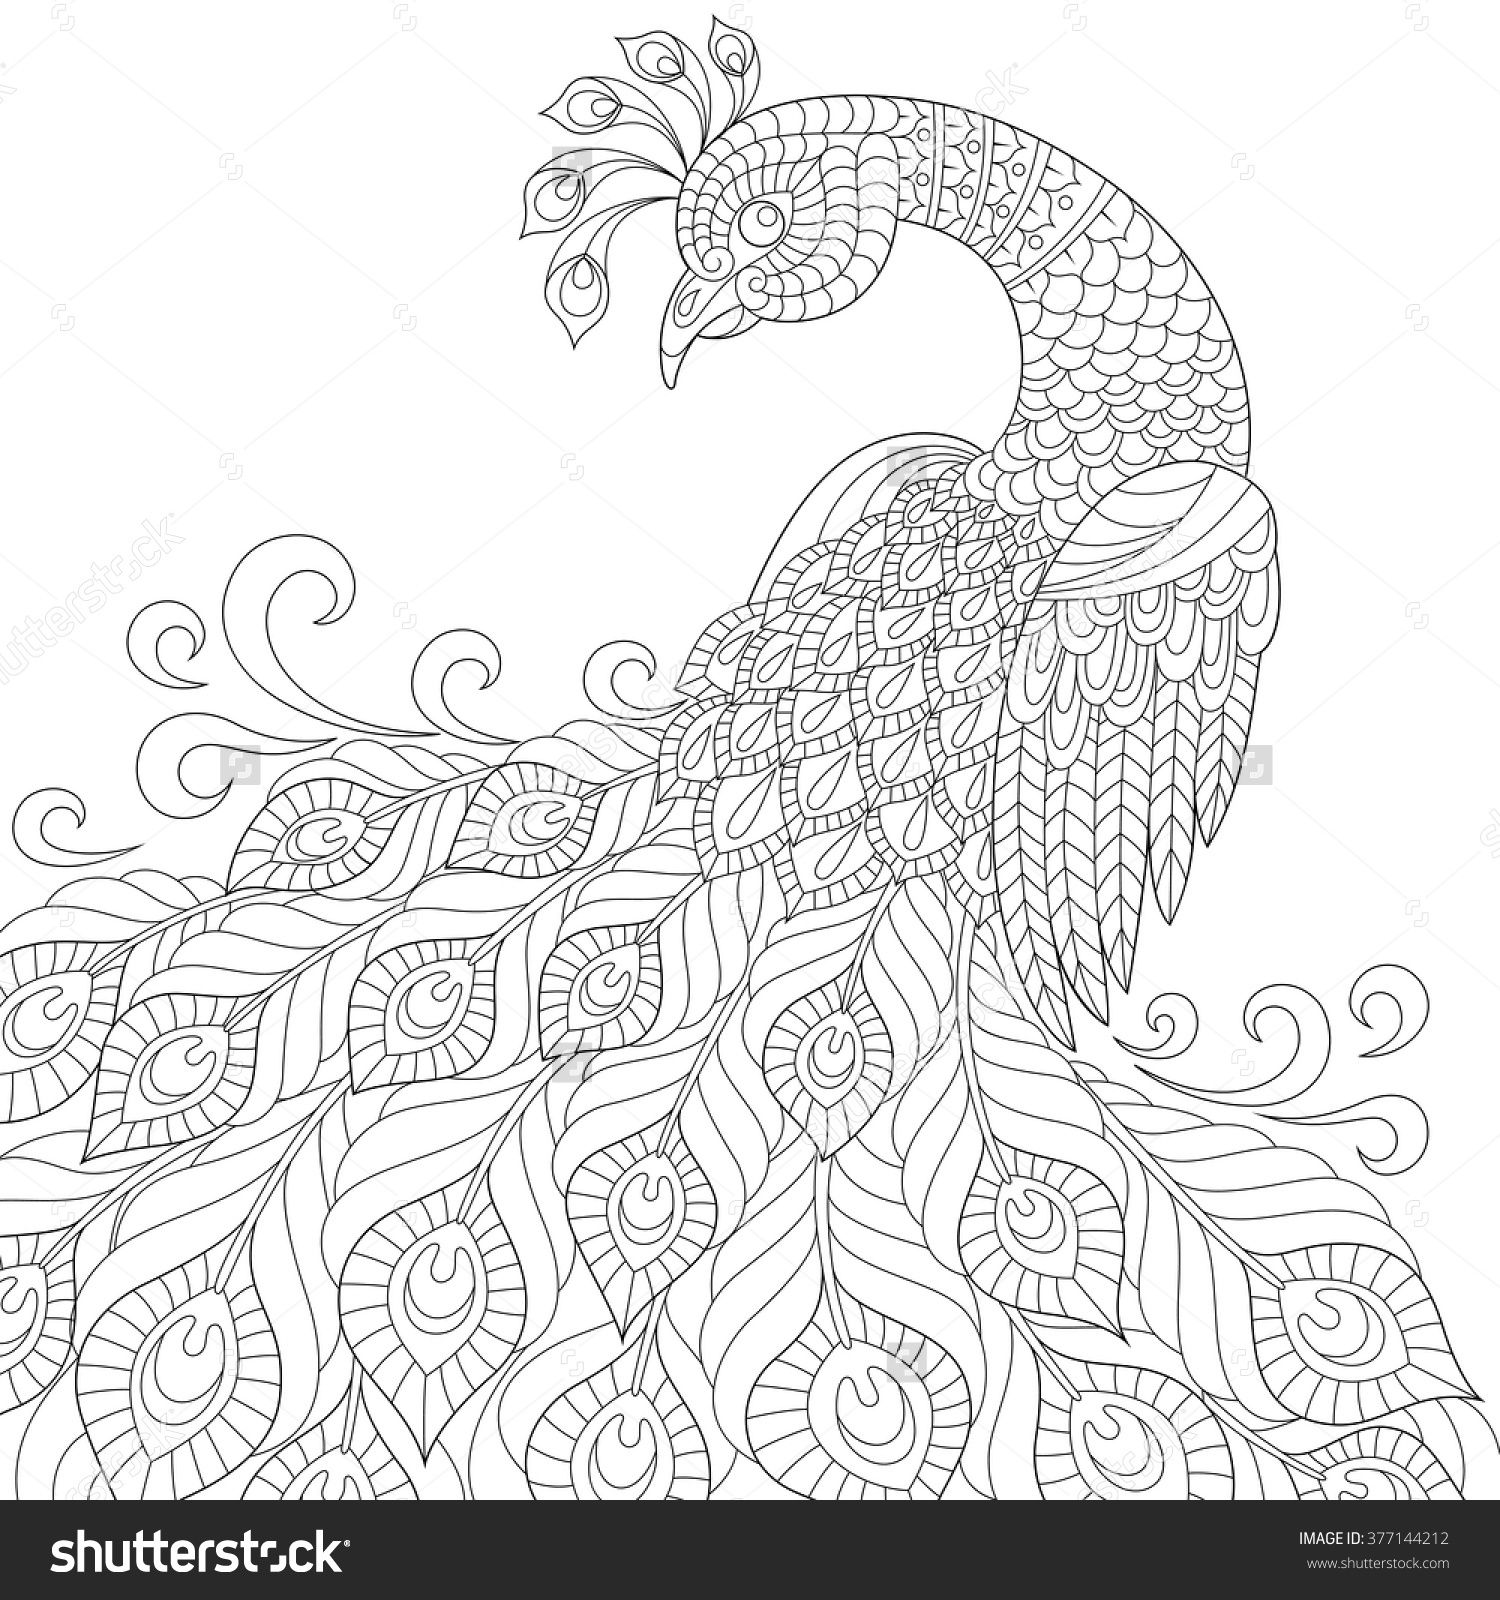 Adult coloring pages black and white ~ Decorative Peacock. Adult Anti-Stress Coloring Page. Black ...